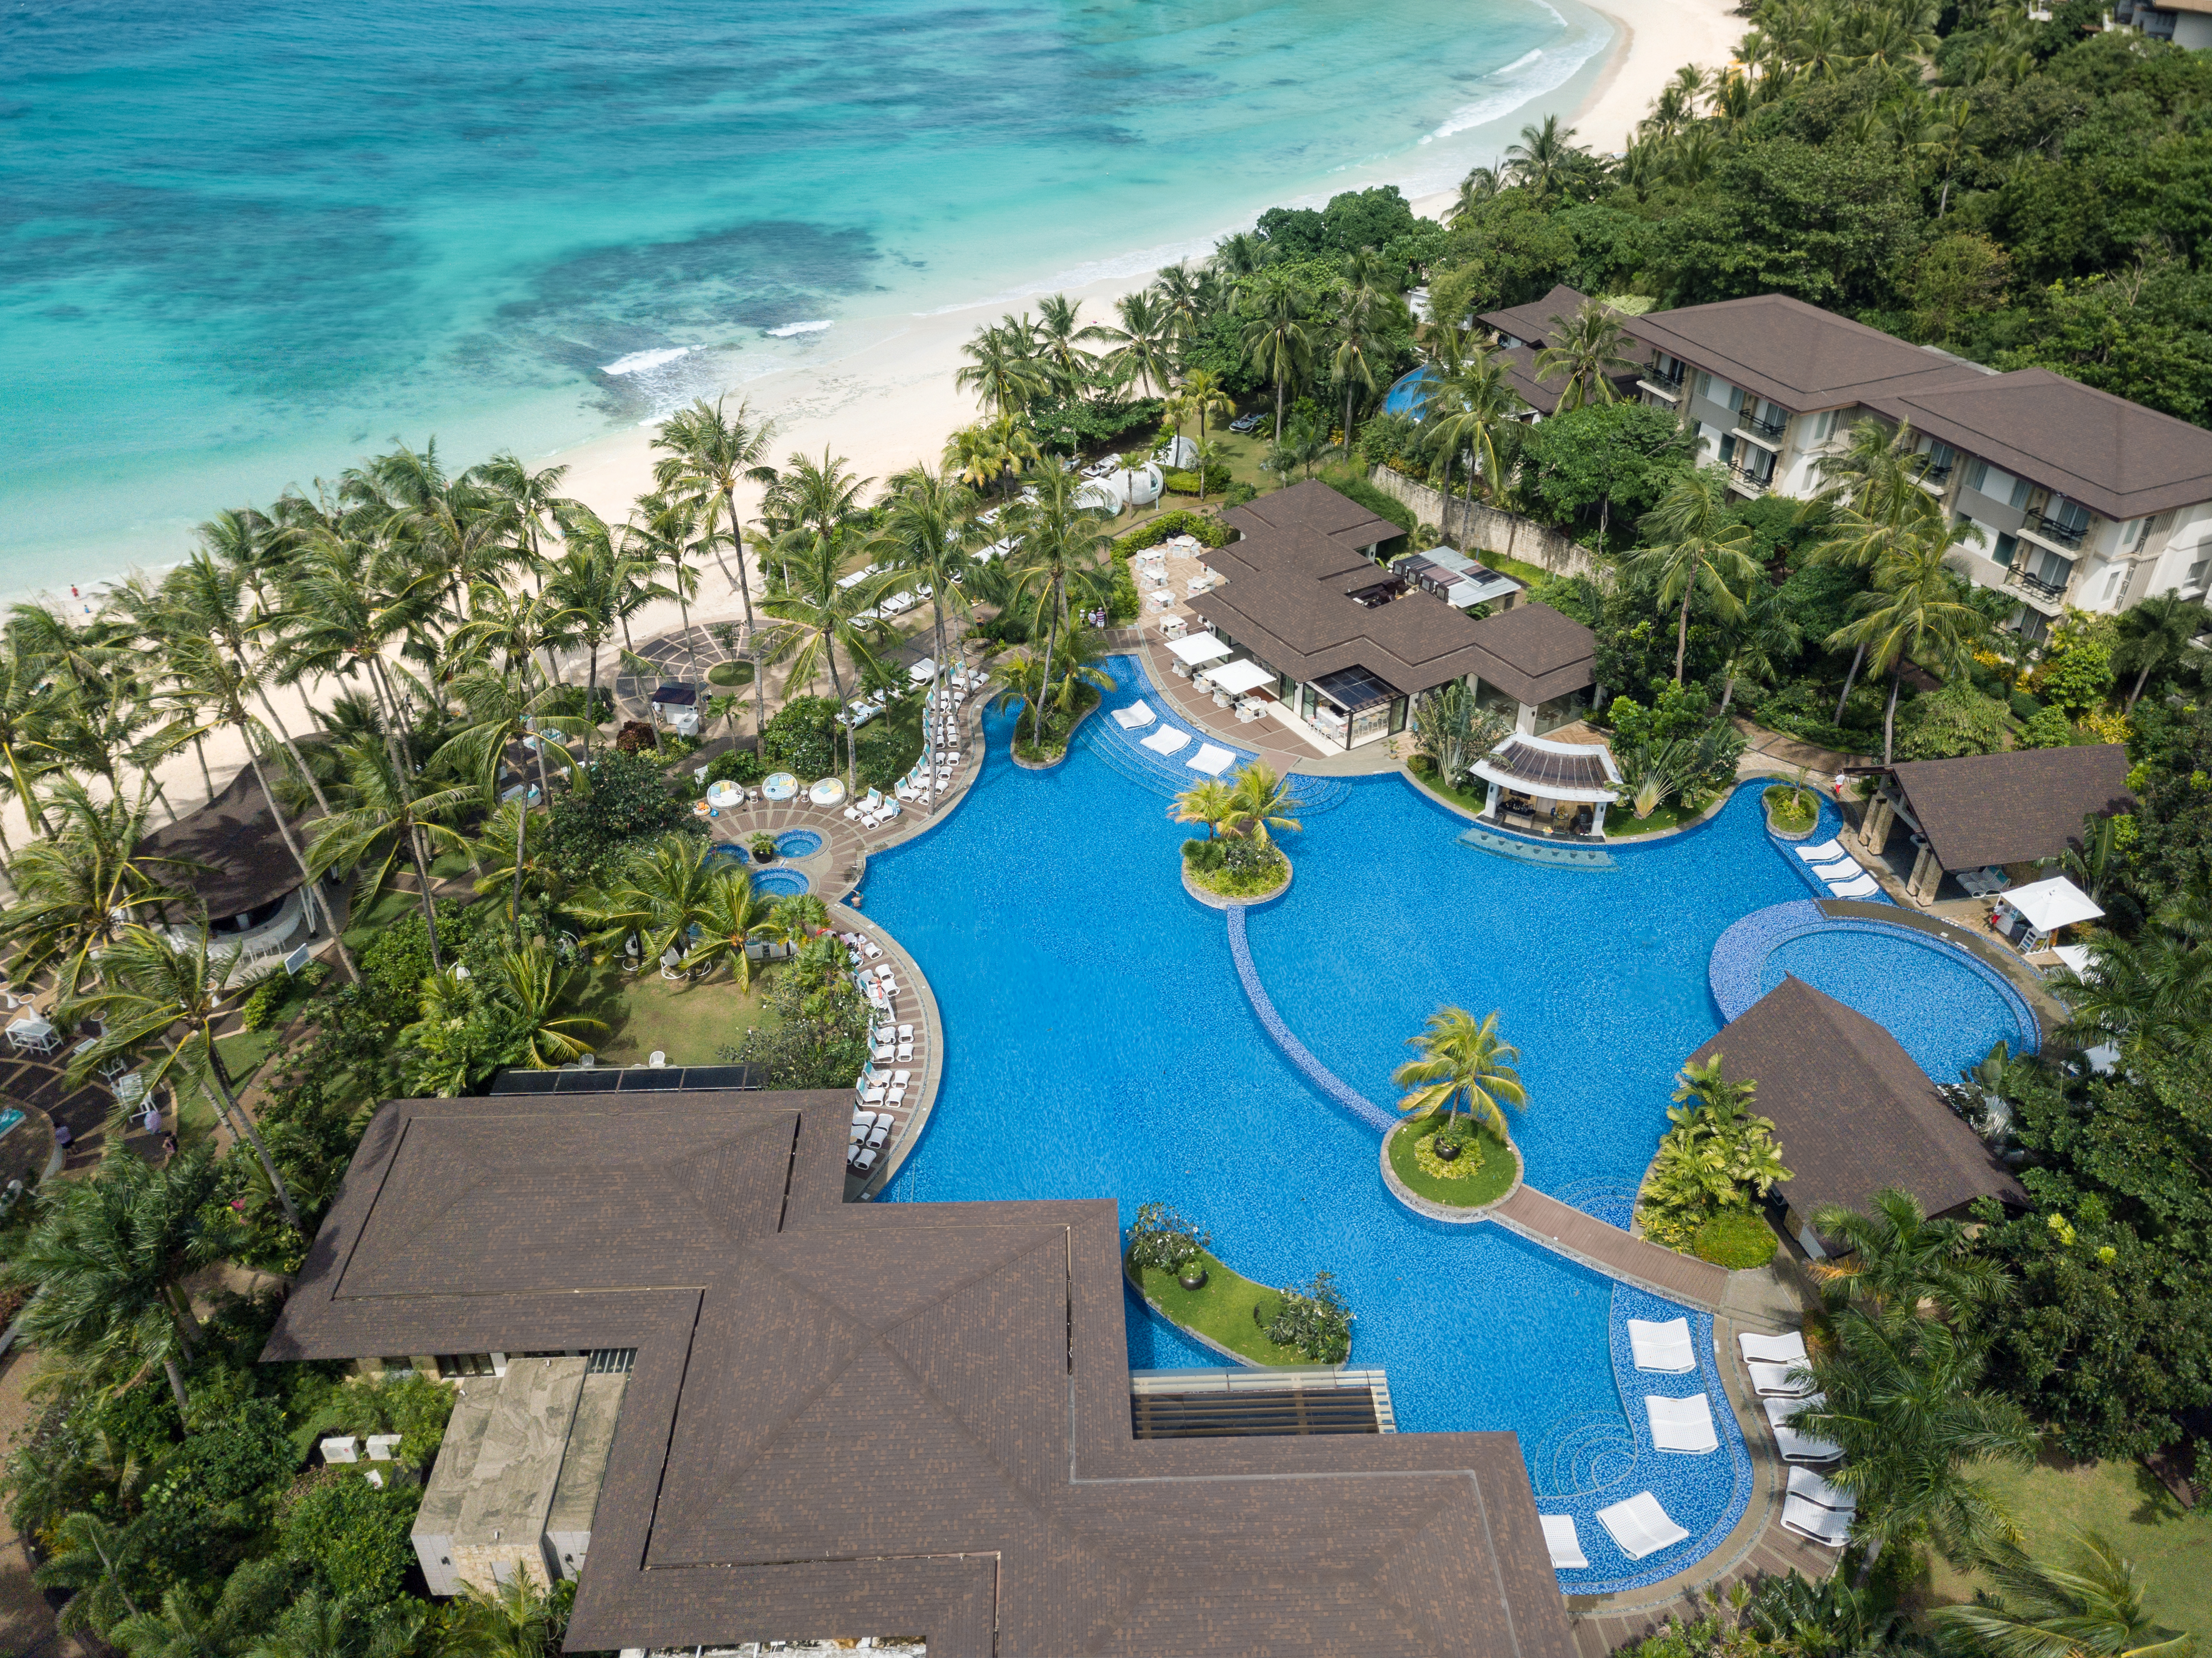 Package Deal to Boracay with Movenpick Resort & Philippine Airlines for 3 Days 2 Nights from Manila - day 1